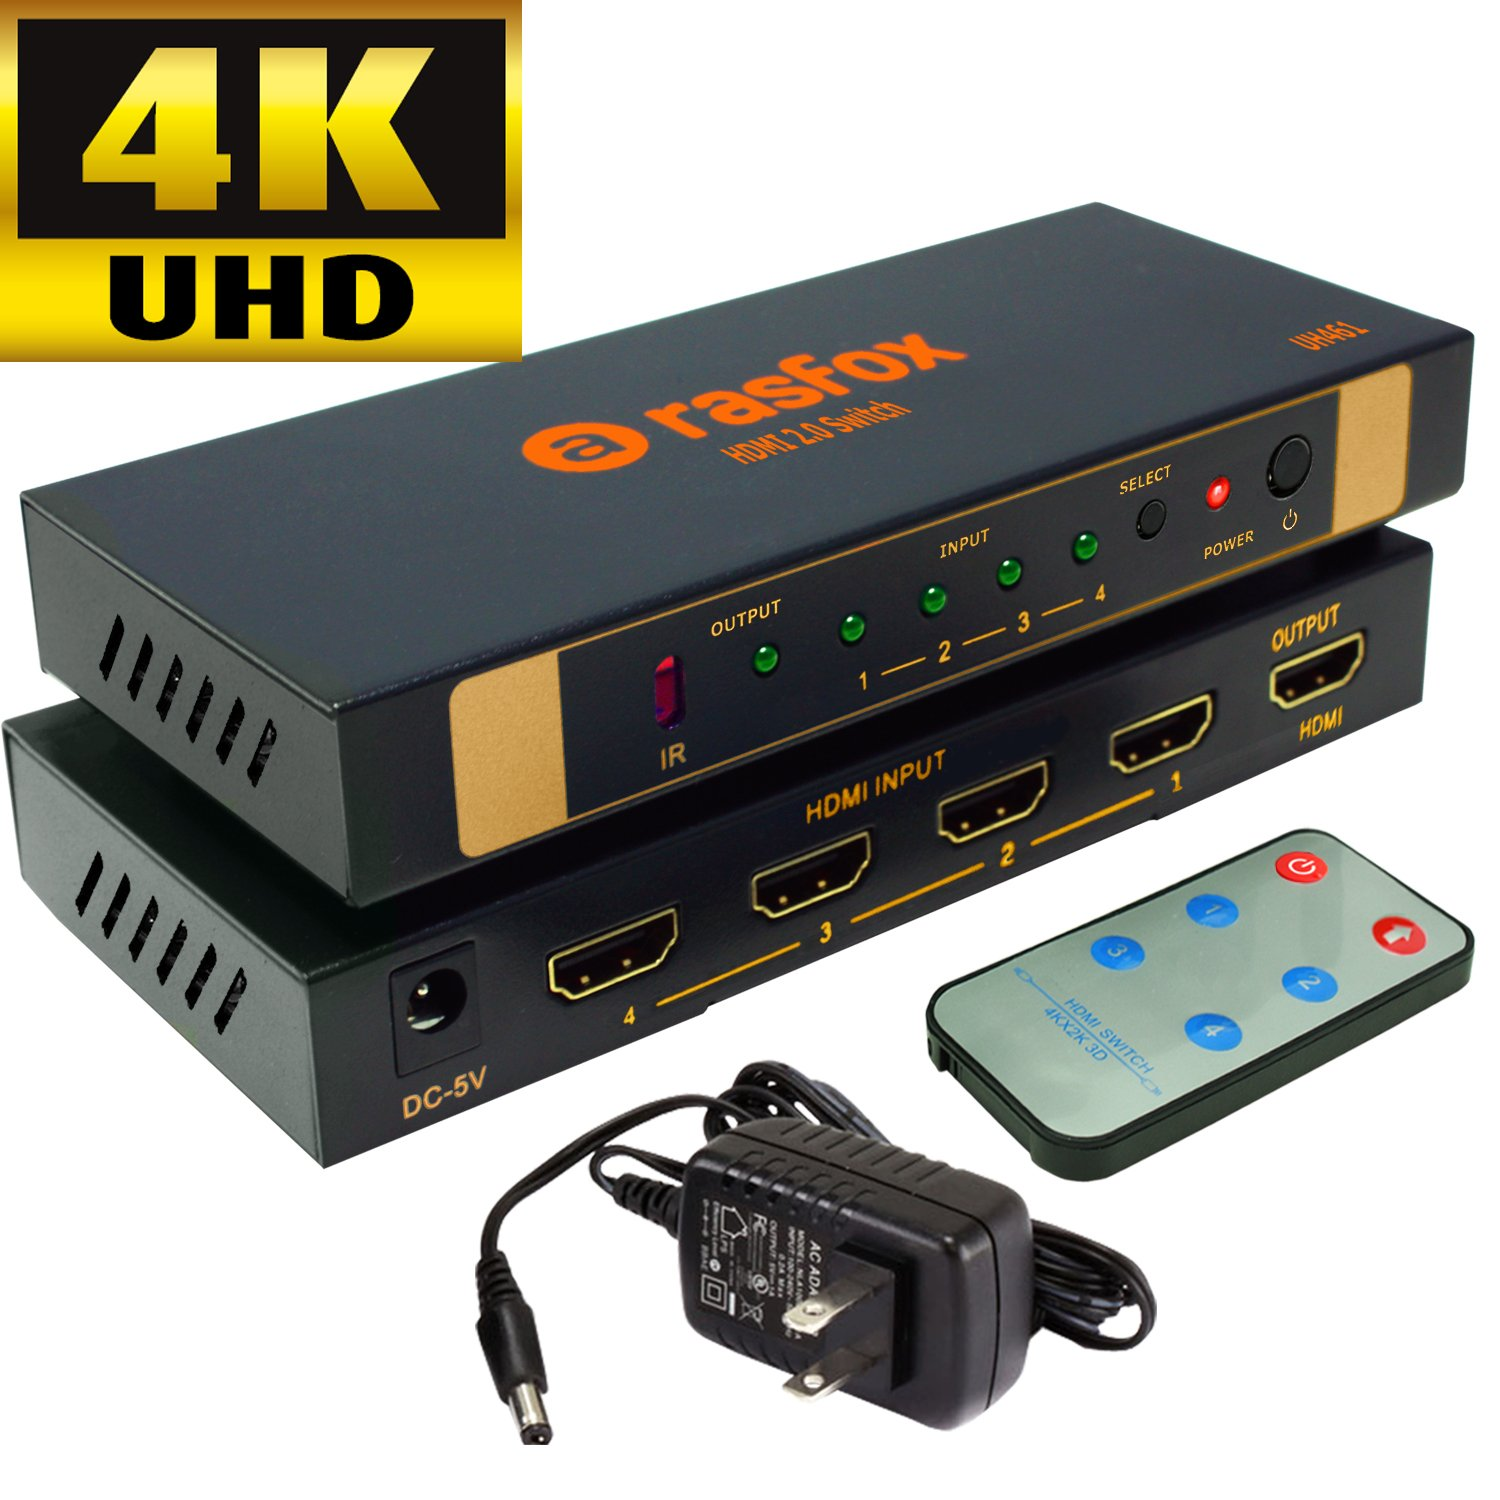 Rasfox UH461 Powered 4x1 4K 60HZ HDMI Switch Switcher Selector Splitter with IR Remote; HDMI 2.0, HDCP 2.2,HDR 4K UHD 1080P 3D; 4 In 1 Out; Connect 4 HD devices to 1 HDTV (UHD 4K@60Hz -UH461)